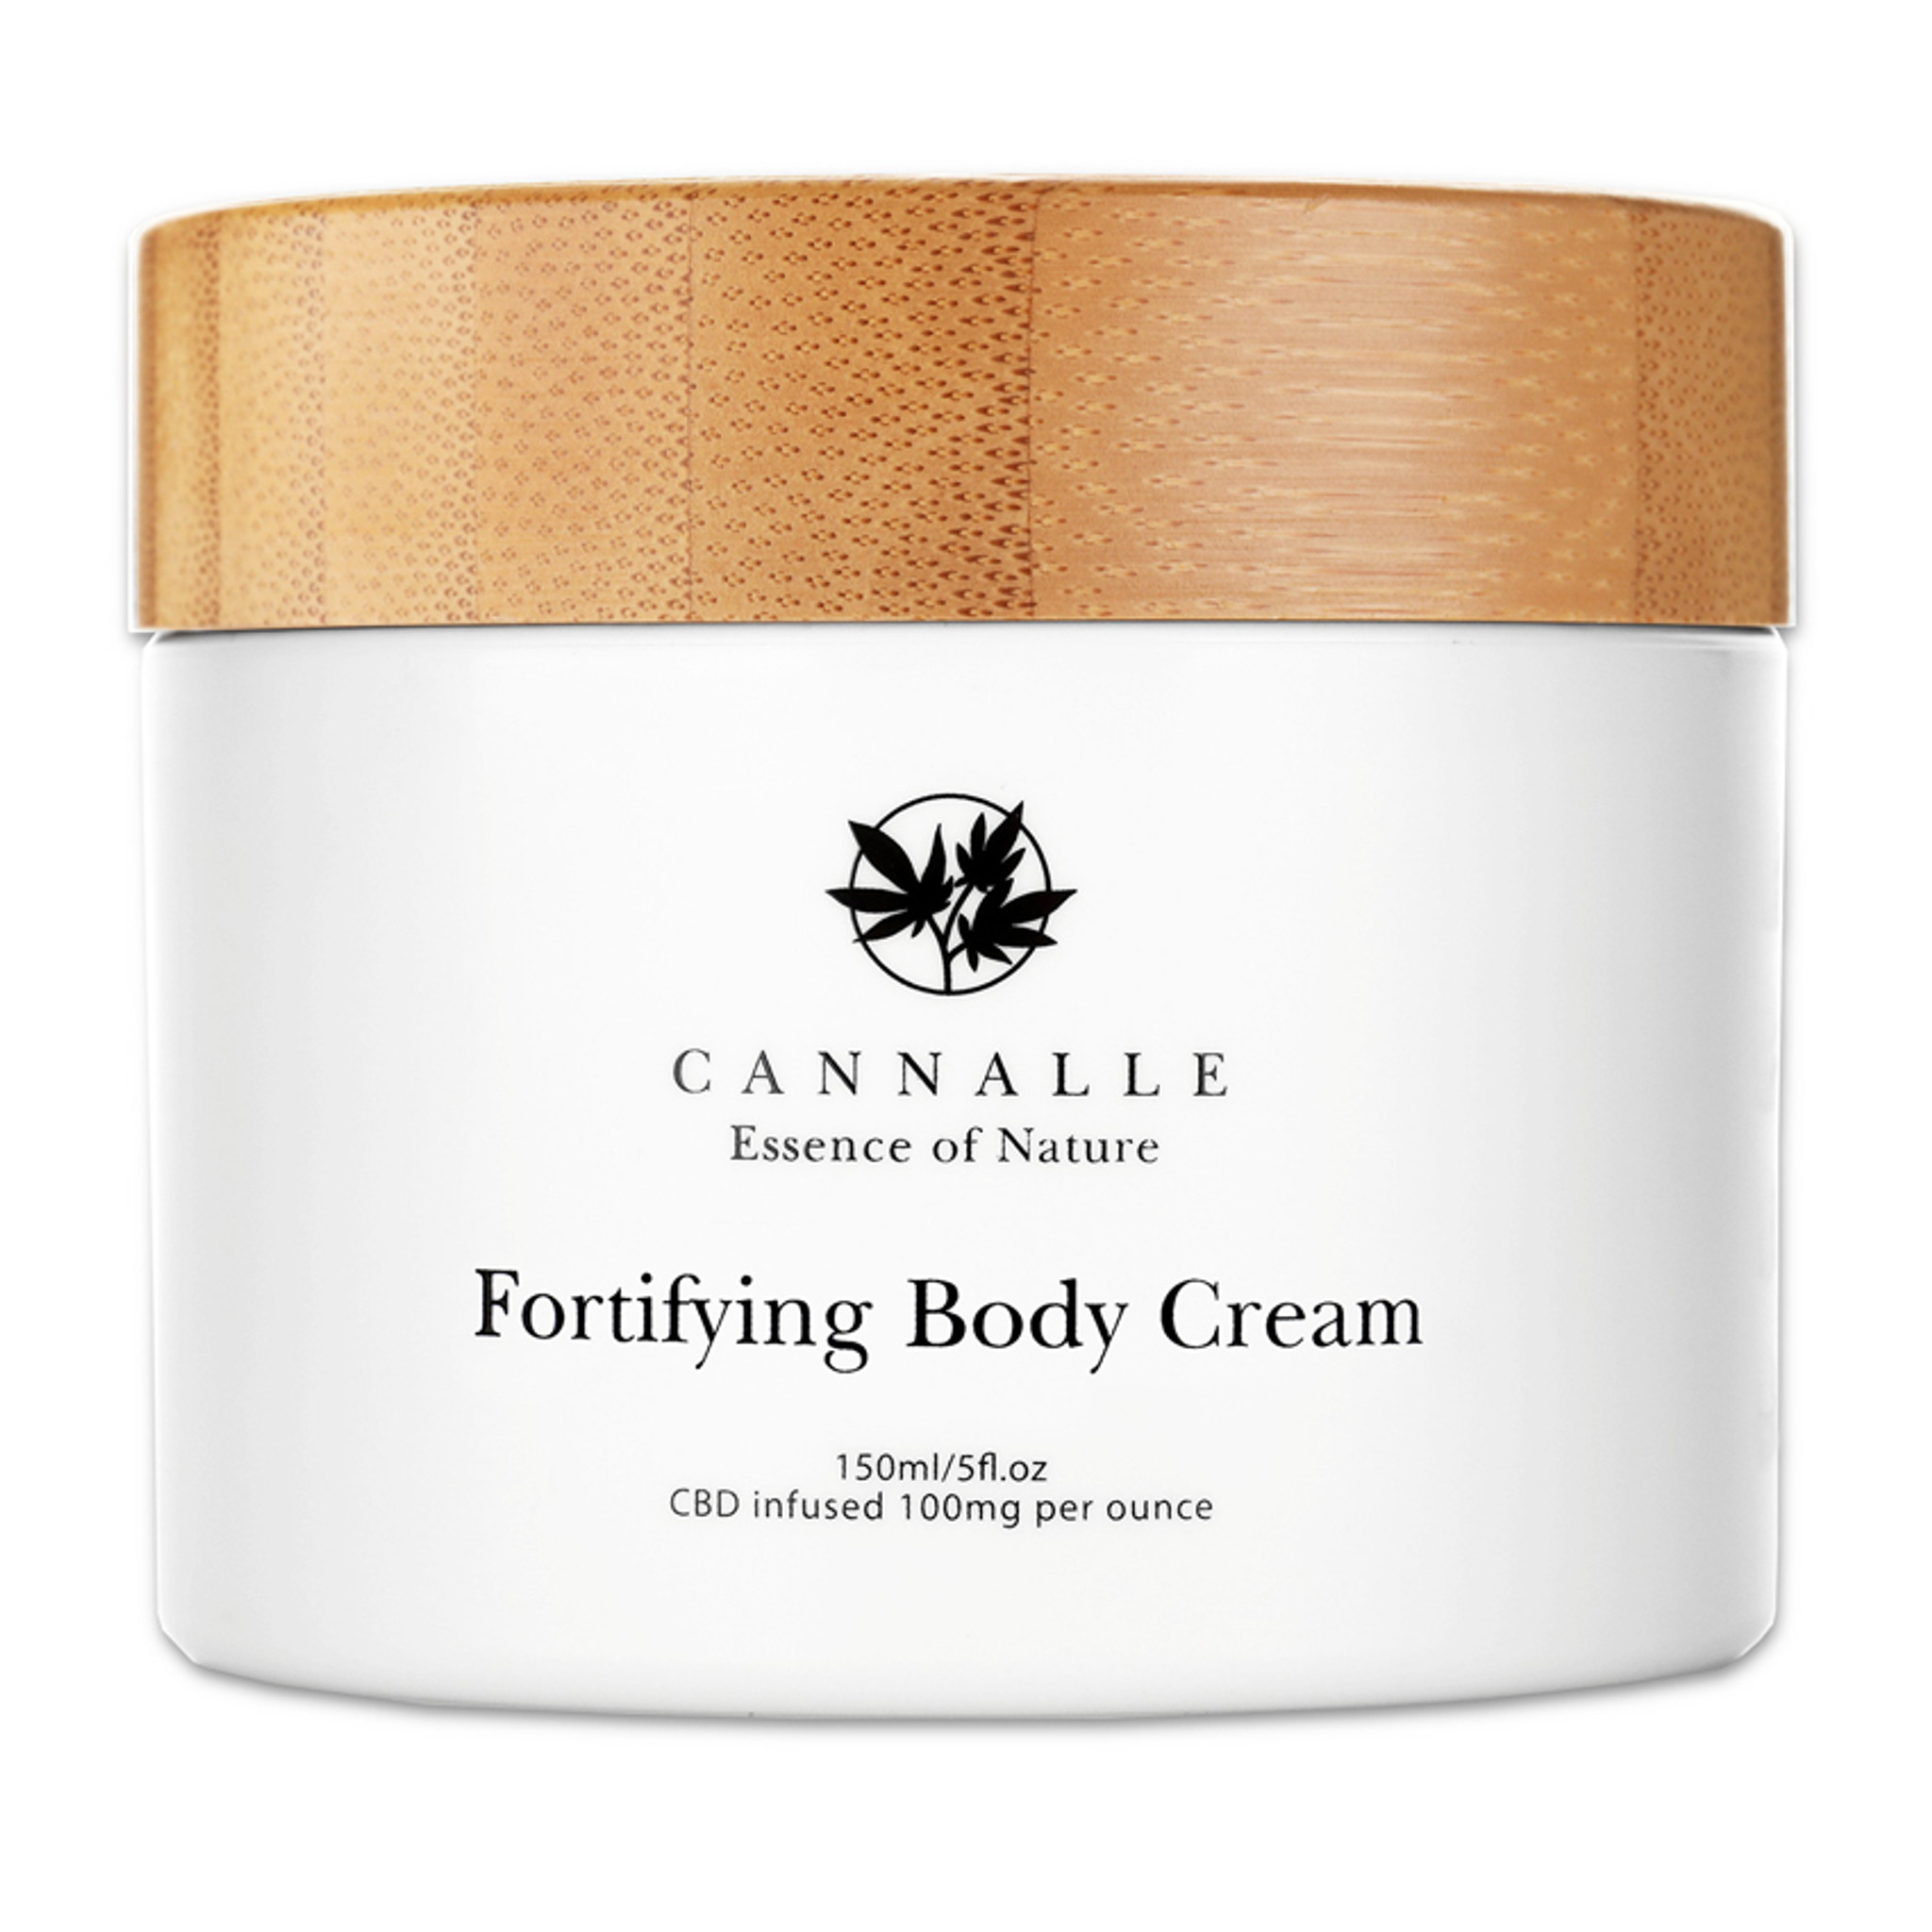 CBD Body Cream